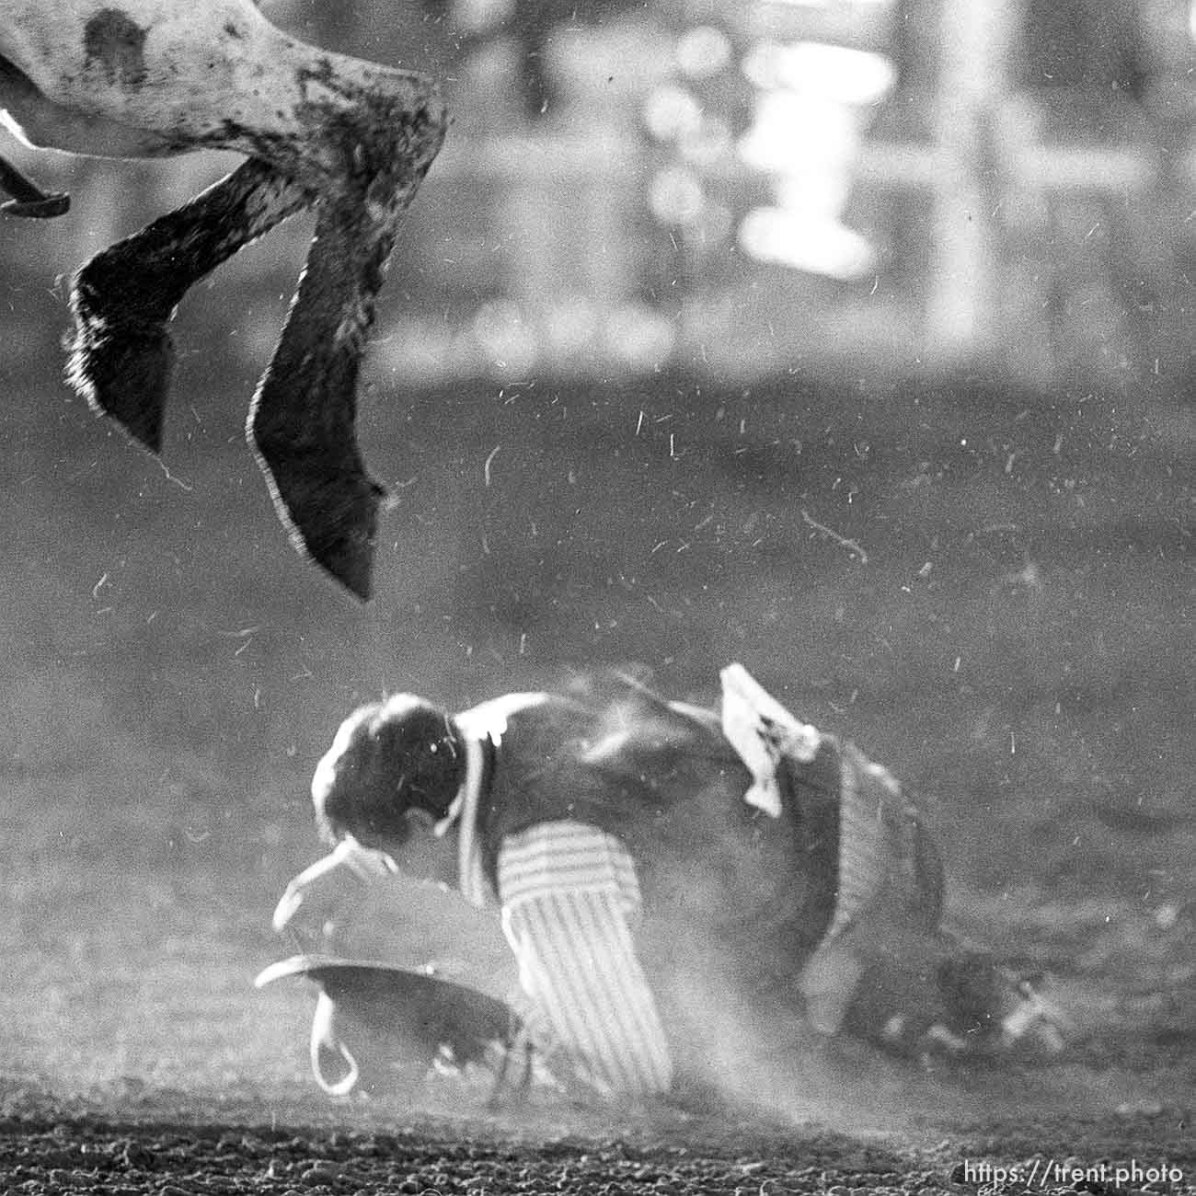 Guy who fell off horse in rodeo.